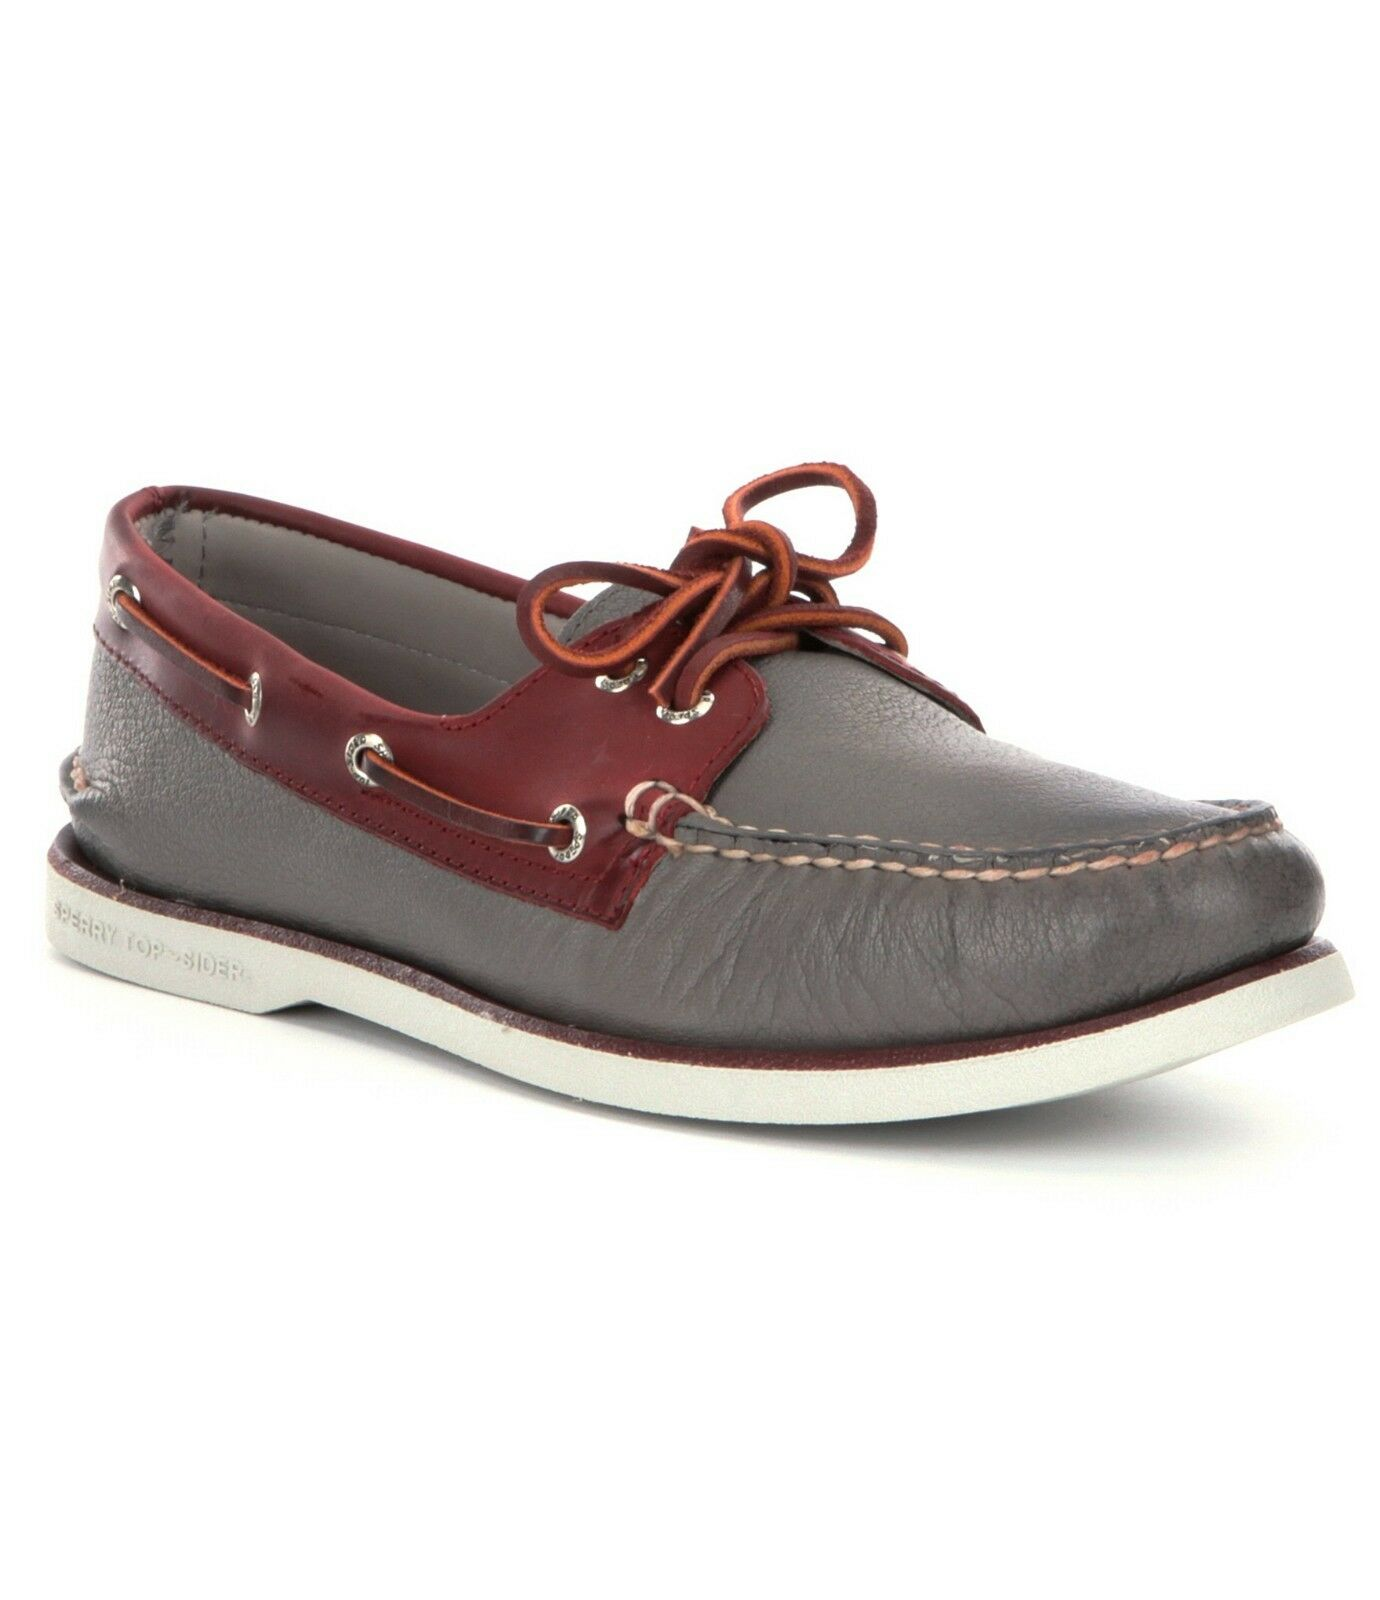 Men's Sperry Top-Sider gold CUP A O 2-Eye Boat shoes, STS11544 Size 8 Grey Bu